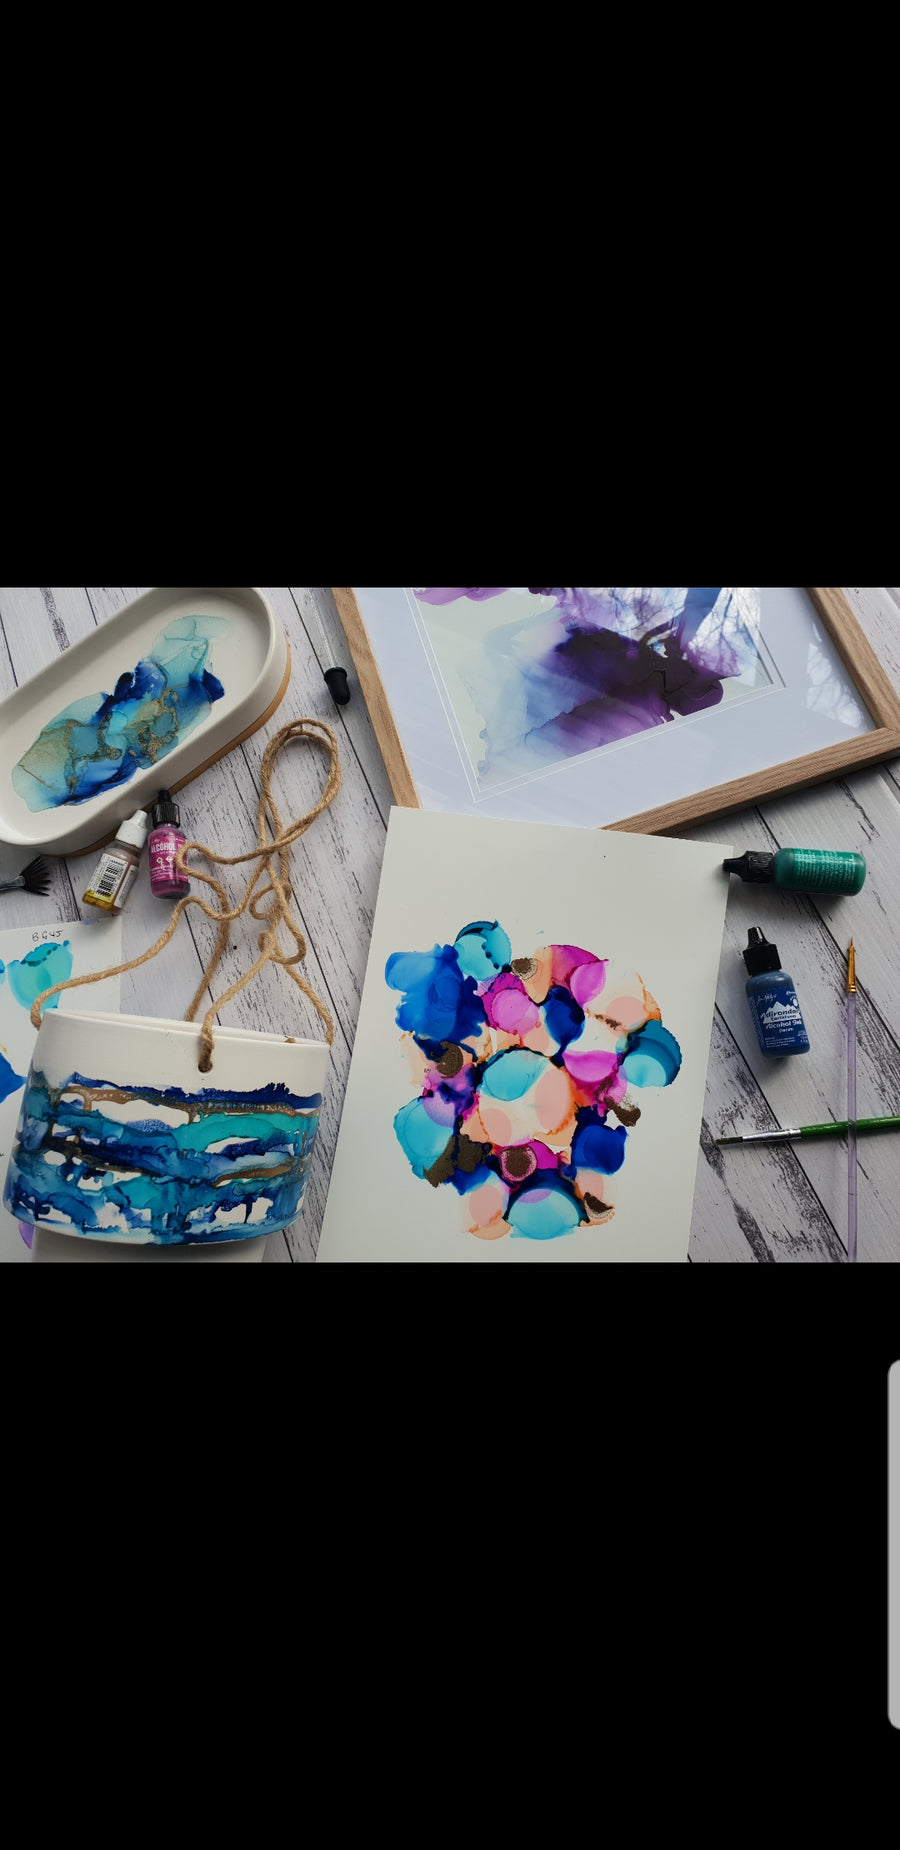 Alcohol inks workshop. Perfect for beginners! February 27th 9am-12pm